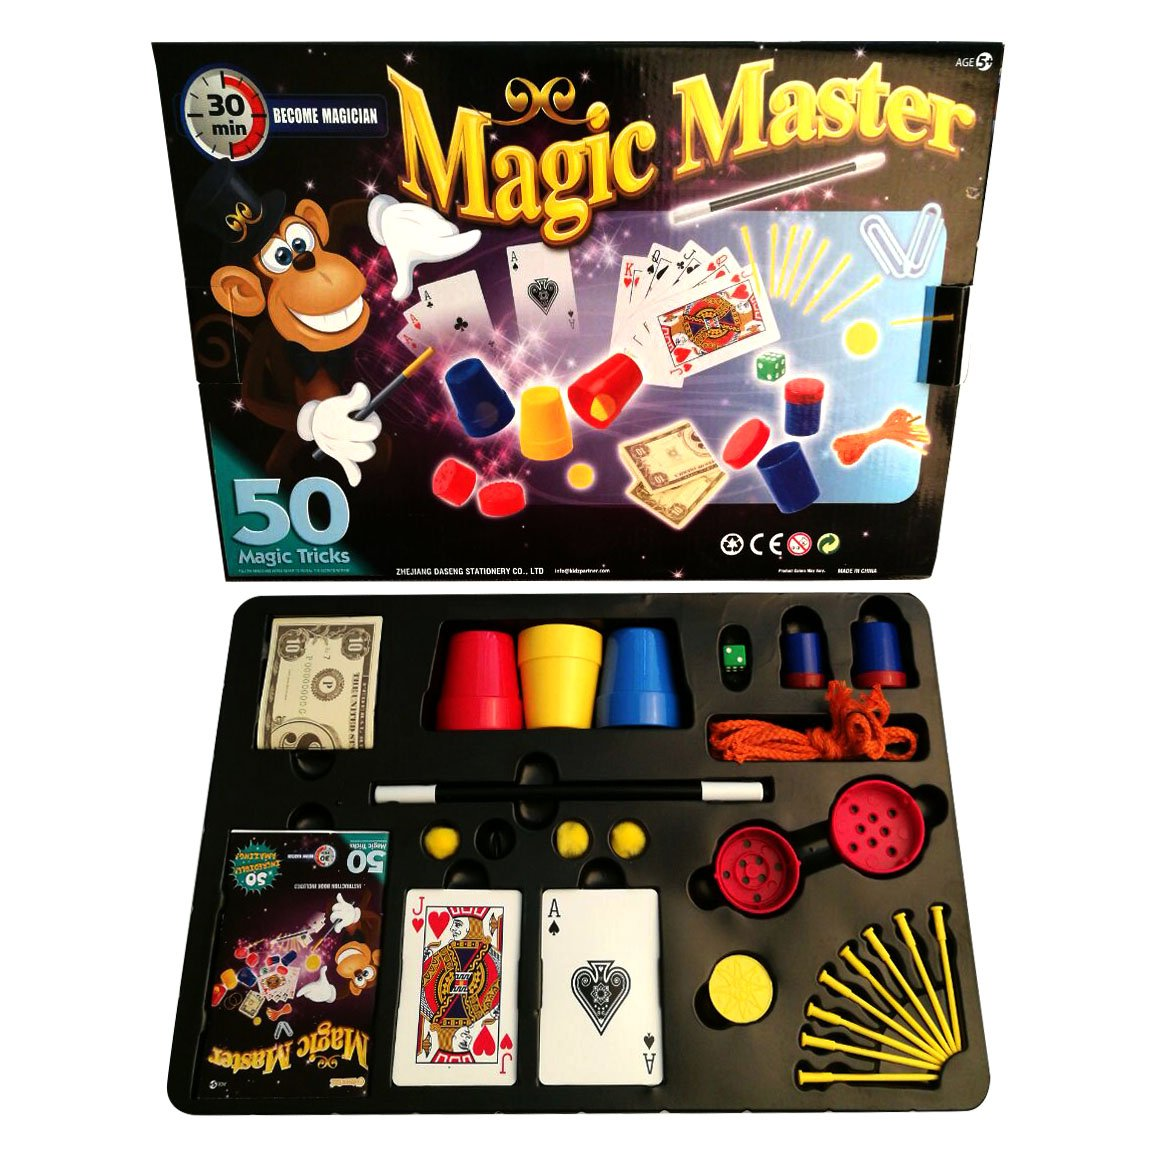 aGreatLife Magic Master Show Suitcase: Best Mind Blowing Magic Kit with 50 Spectacular Magic Tricks for Kids and Grown-Ups Alike